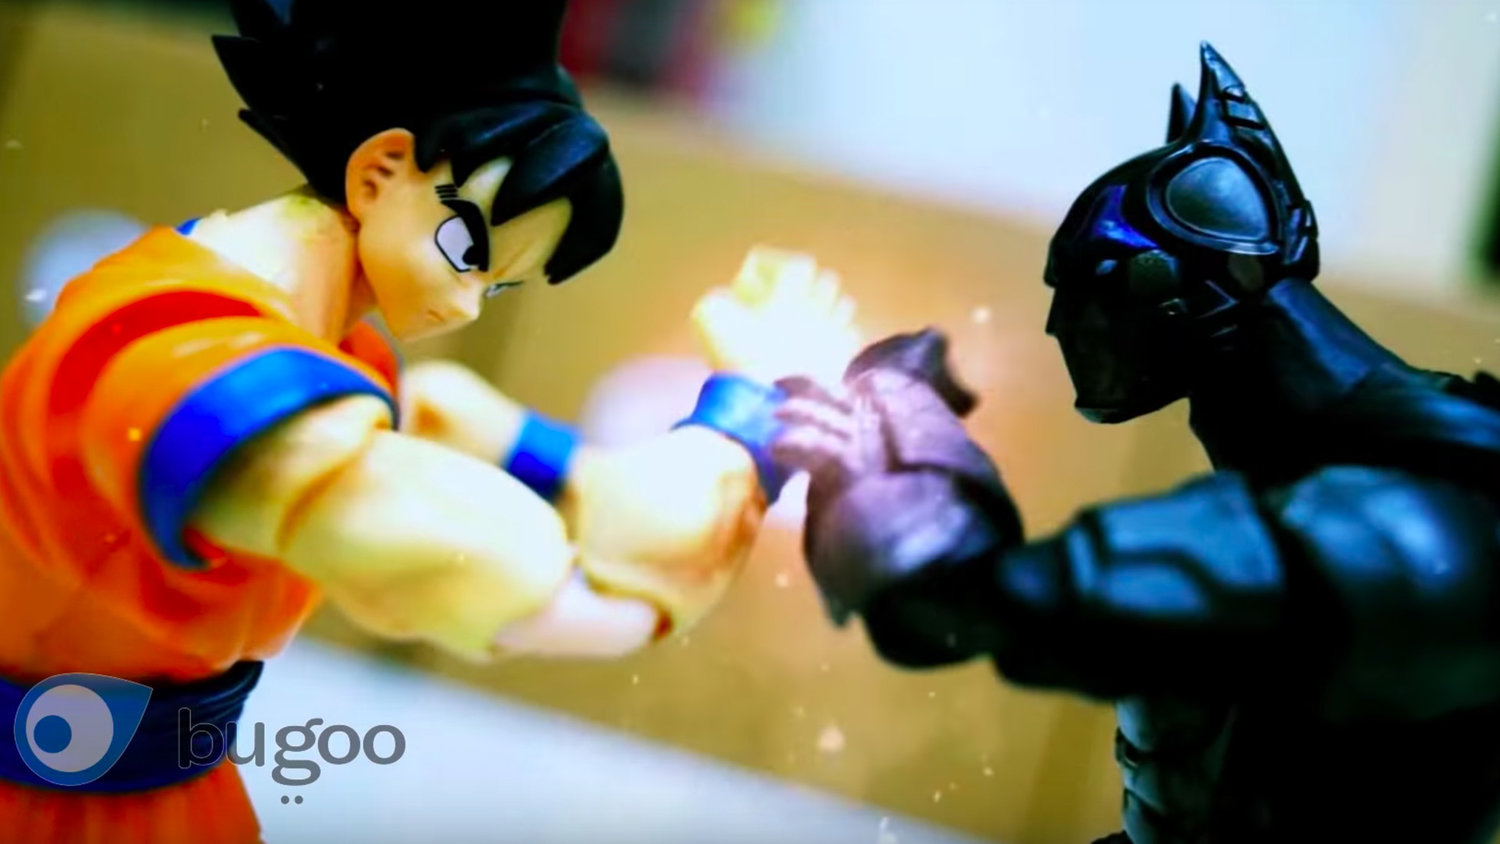 Goku Brawls With Android Batman in Fan-Made Stop-Motion Video